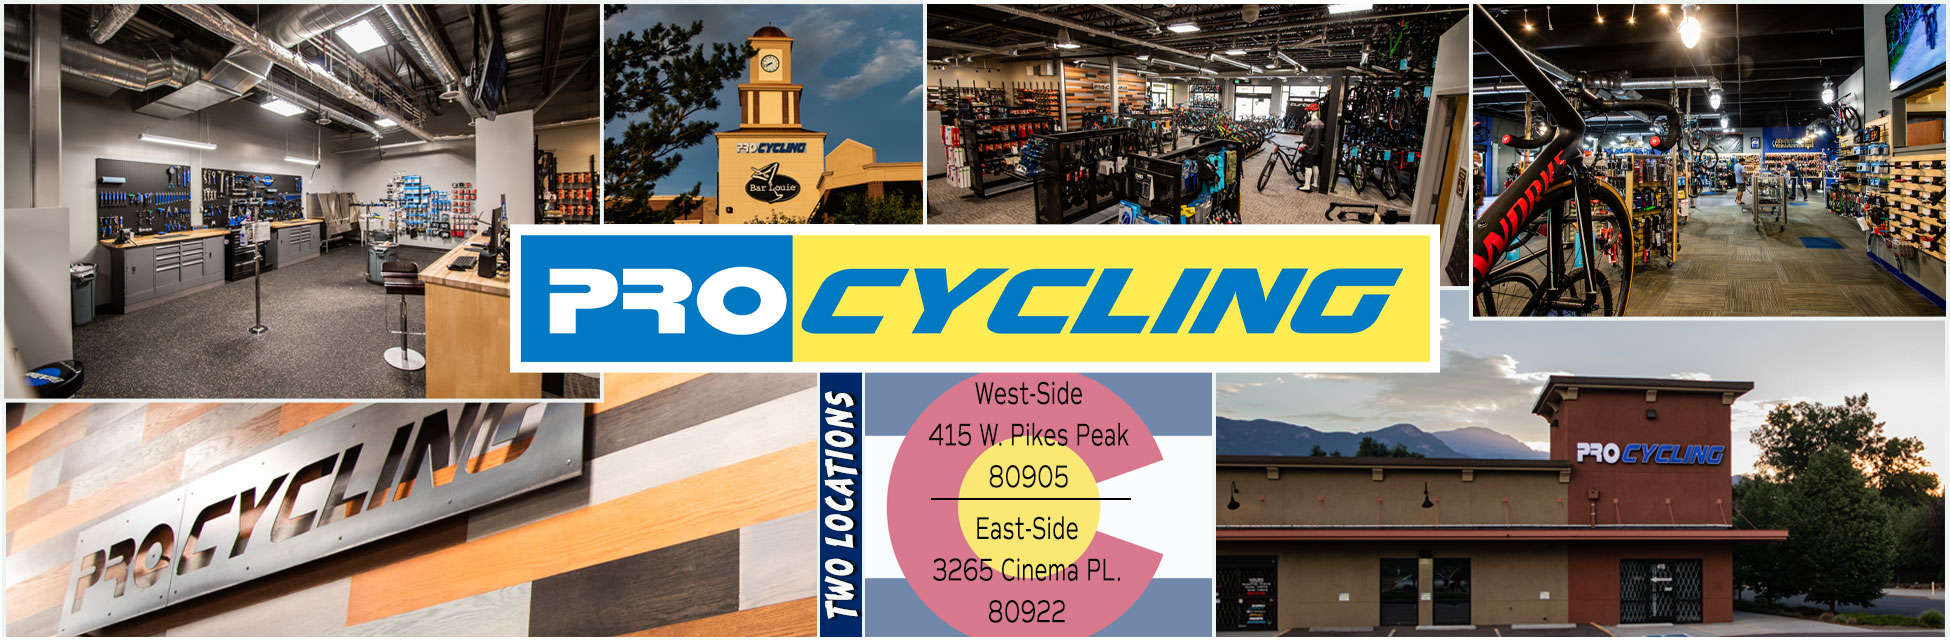 ProCycling - Two Locations